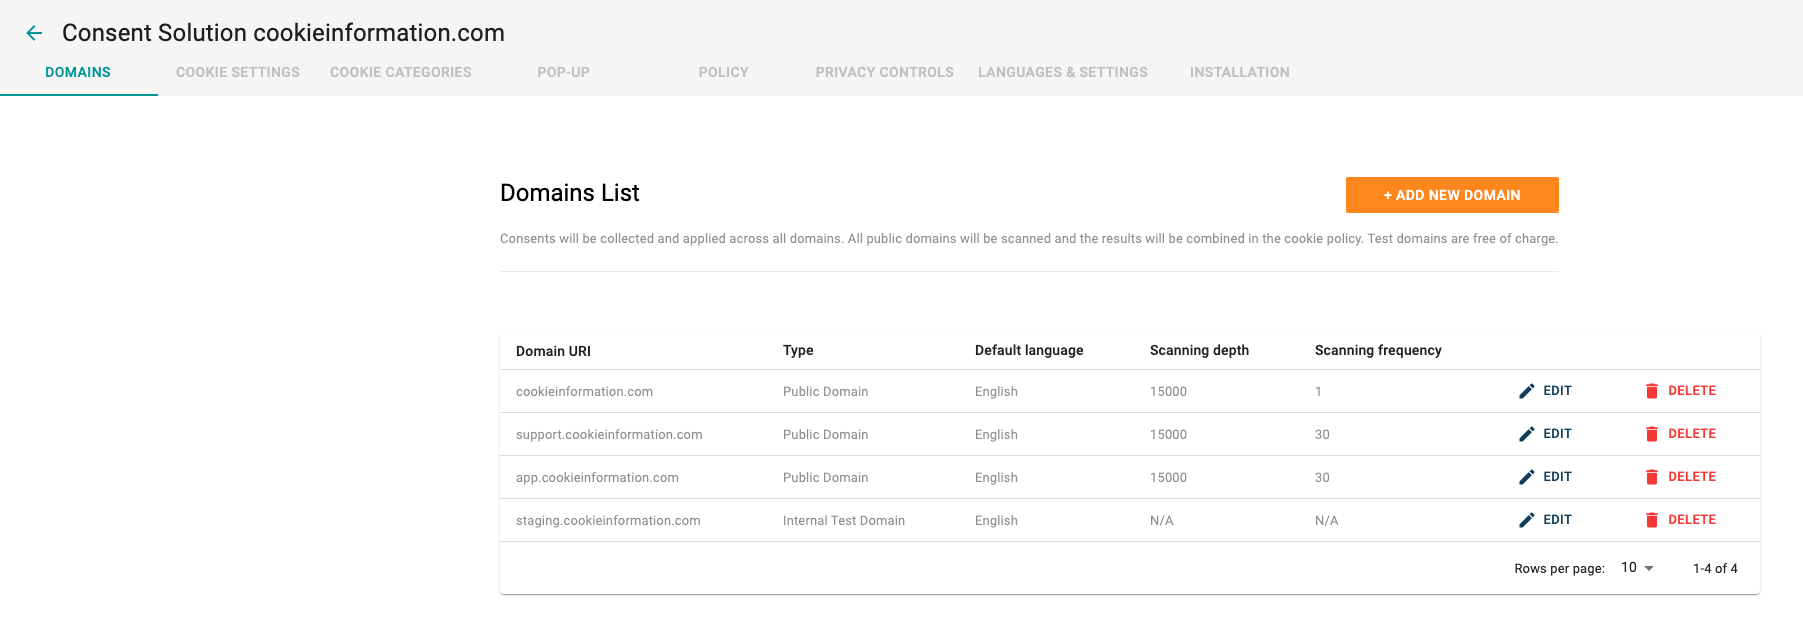 View of the domain overview in a consent solution in the Cookie Information platform